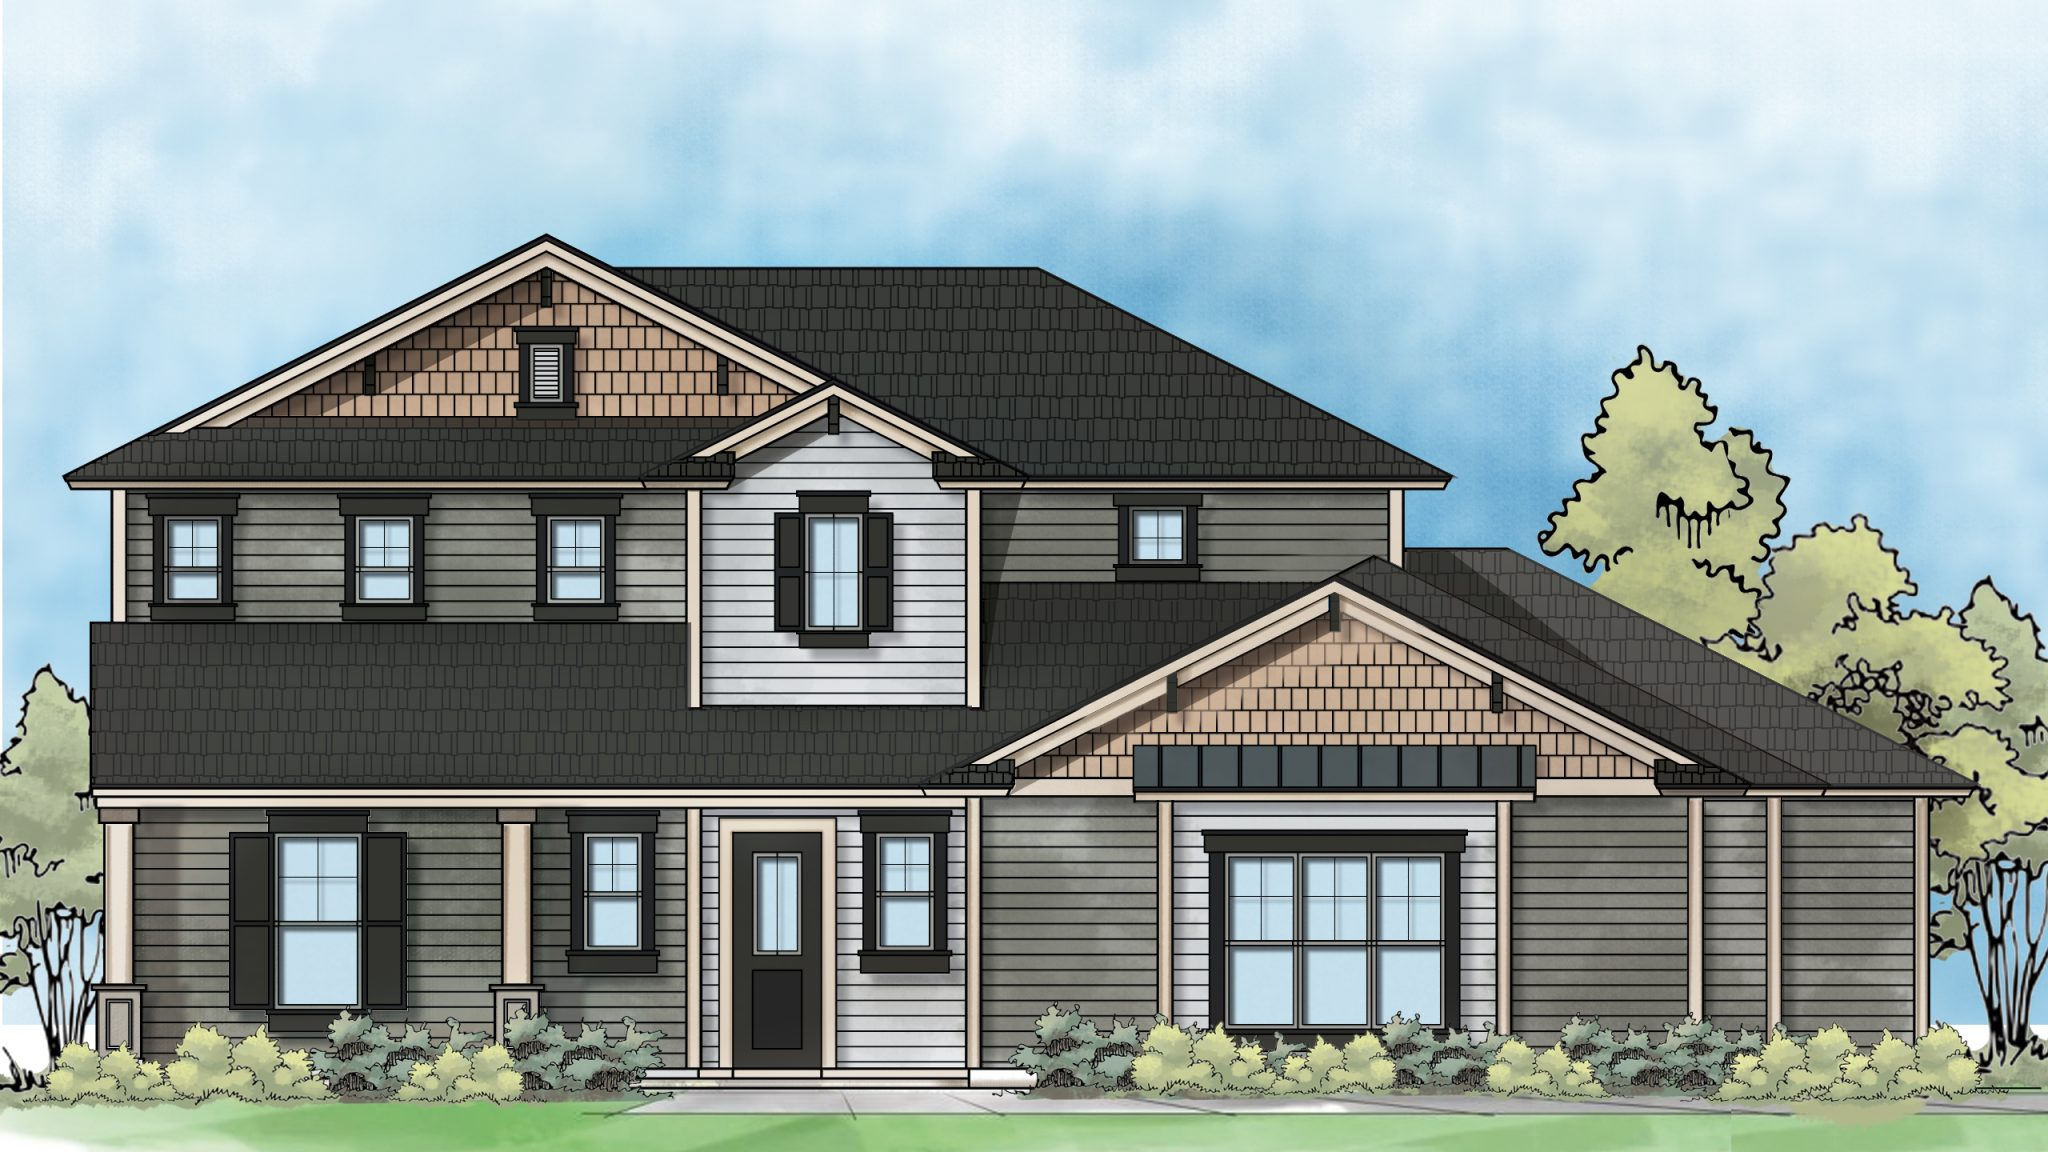 color rendering of residential home design - elevation